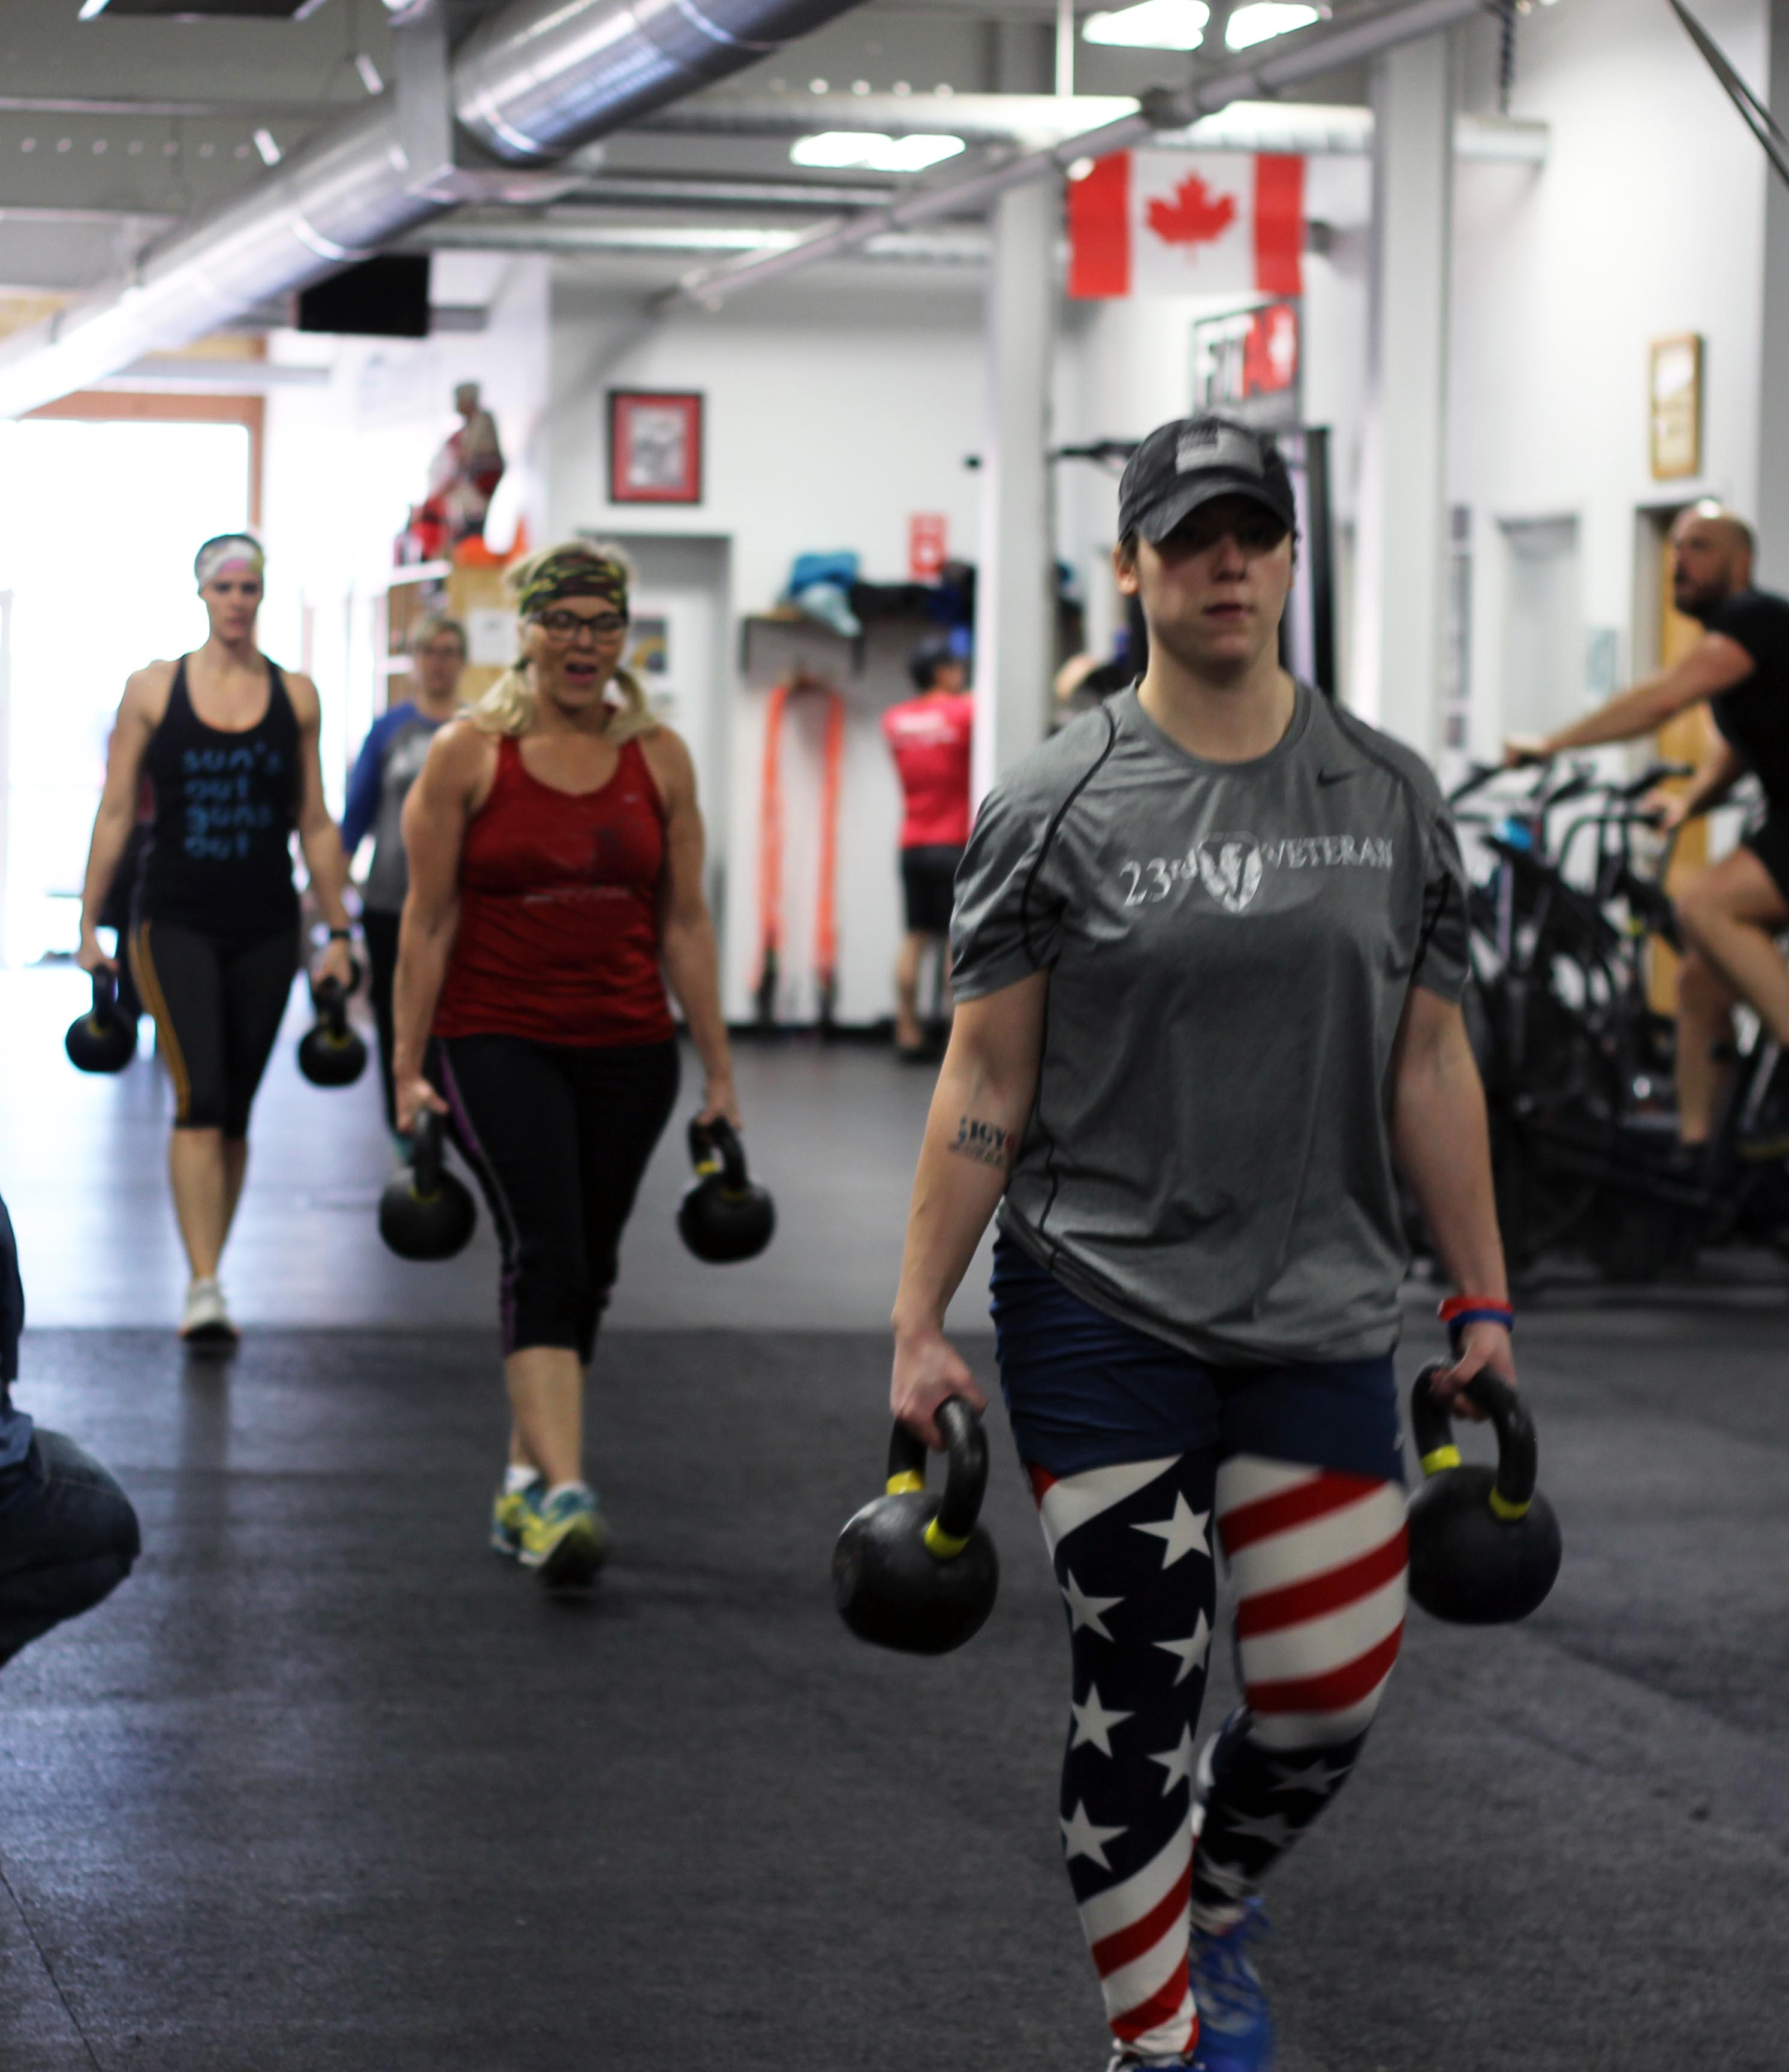 Nearly naked for veterans: Ruck march fundraiser comes